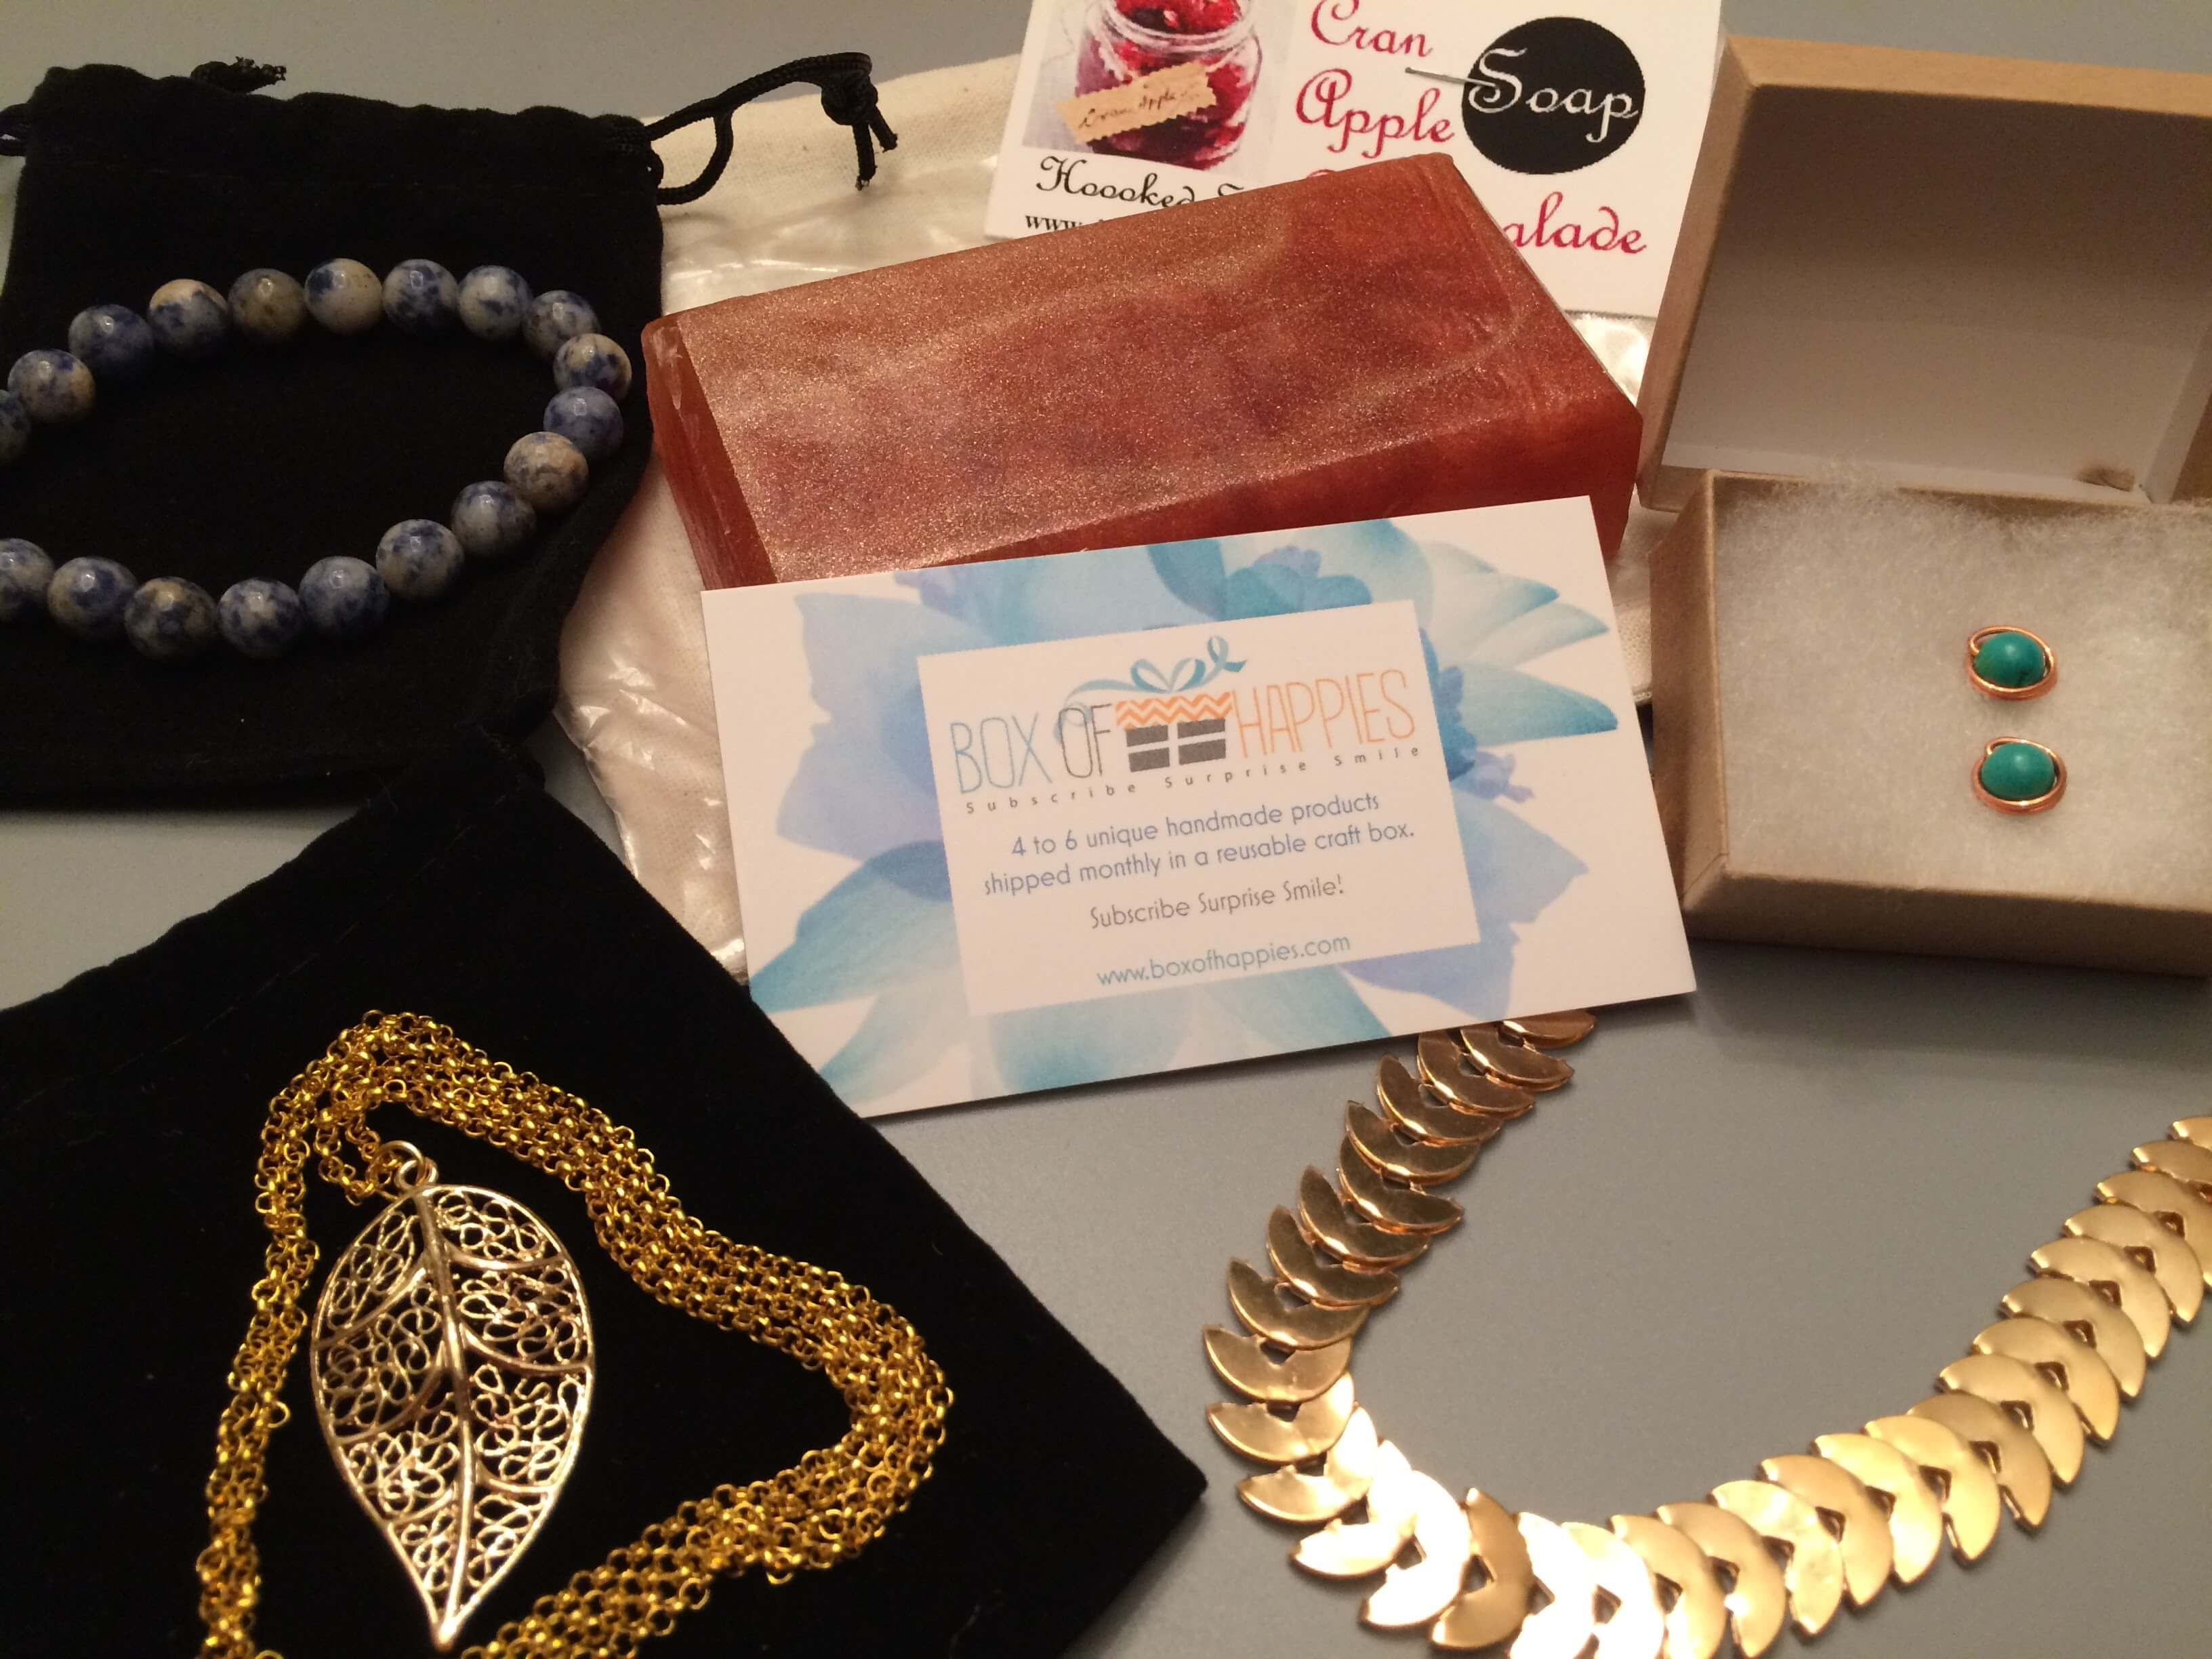 Box of Happies October 2016 Subscription Box Review + Coupon